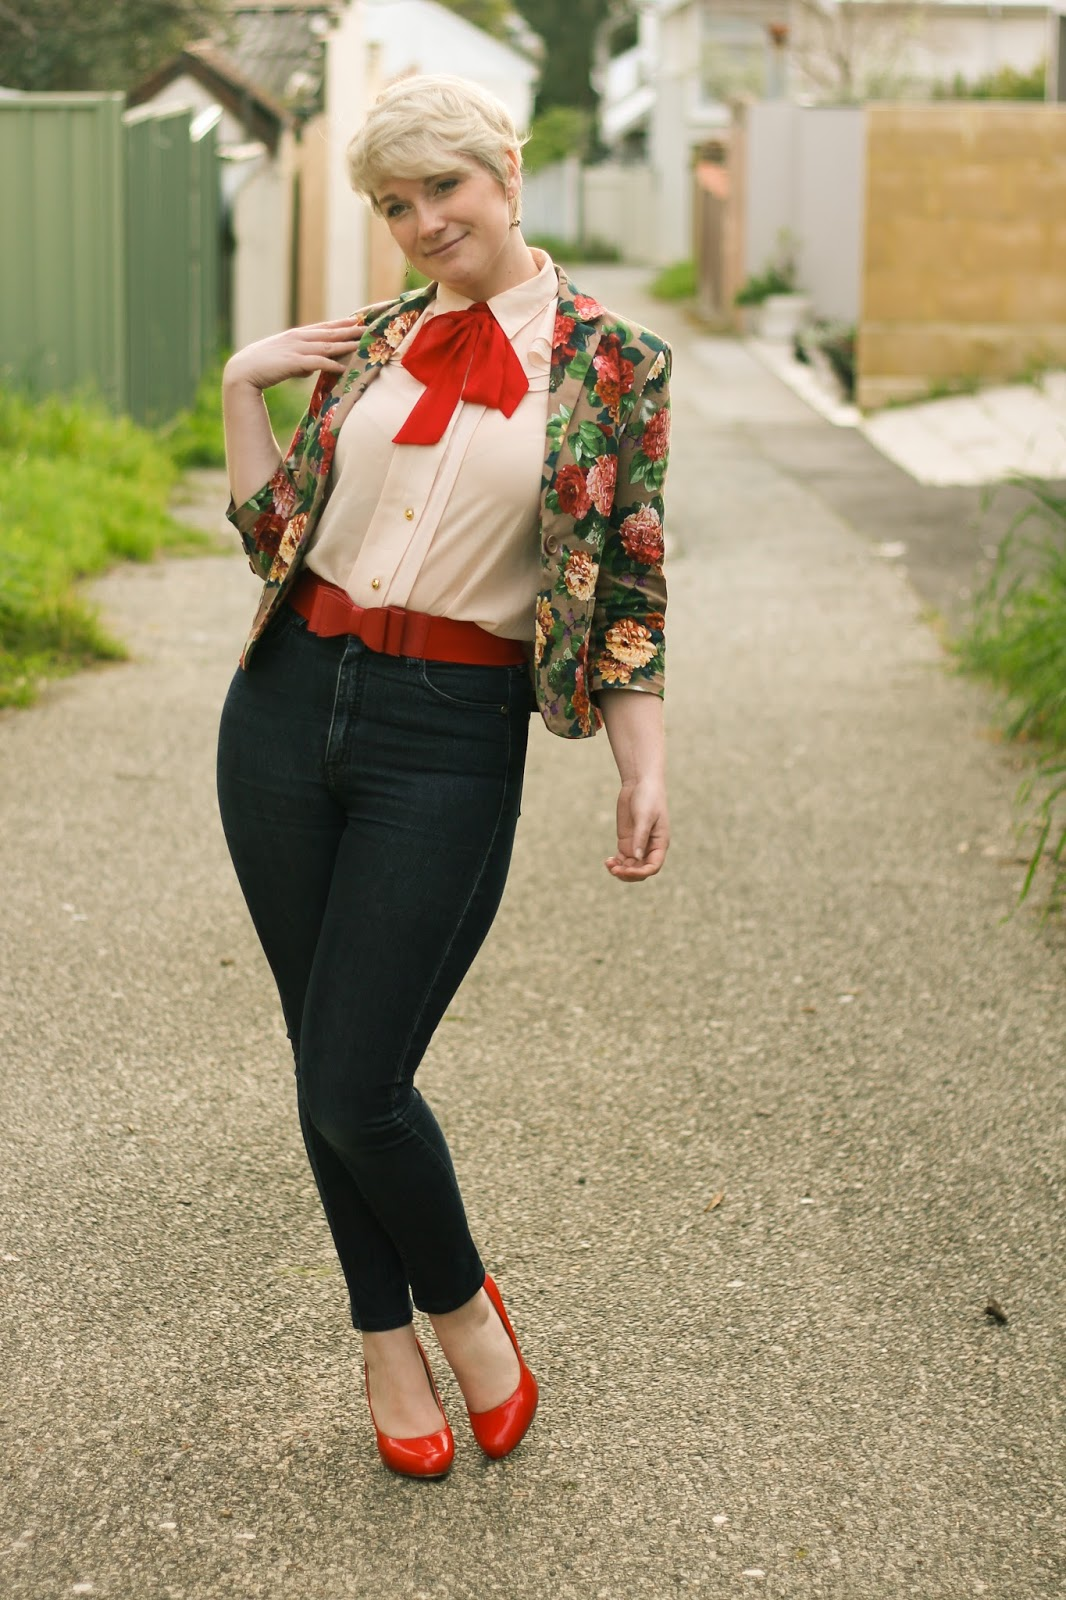 Liana of Finding Femme wears Modcloth blouse with red necktie, red patent pumps, custom skinny jeans, floral Dangerfield blazer.